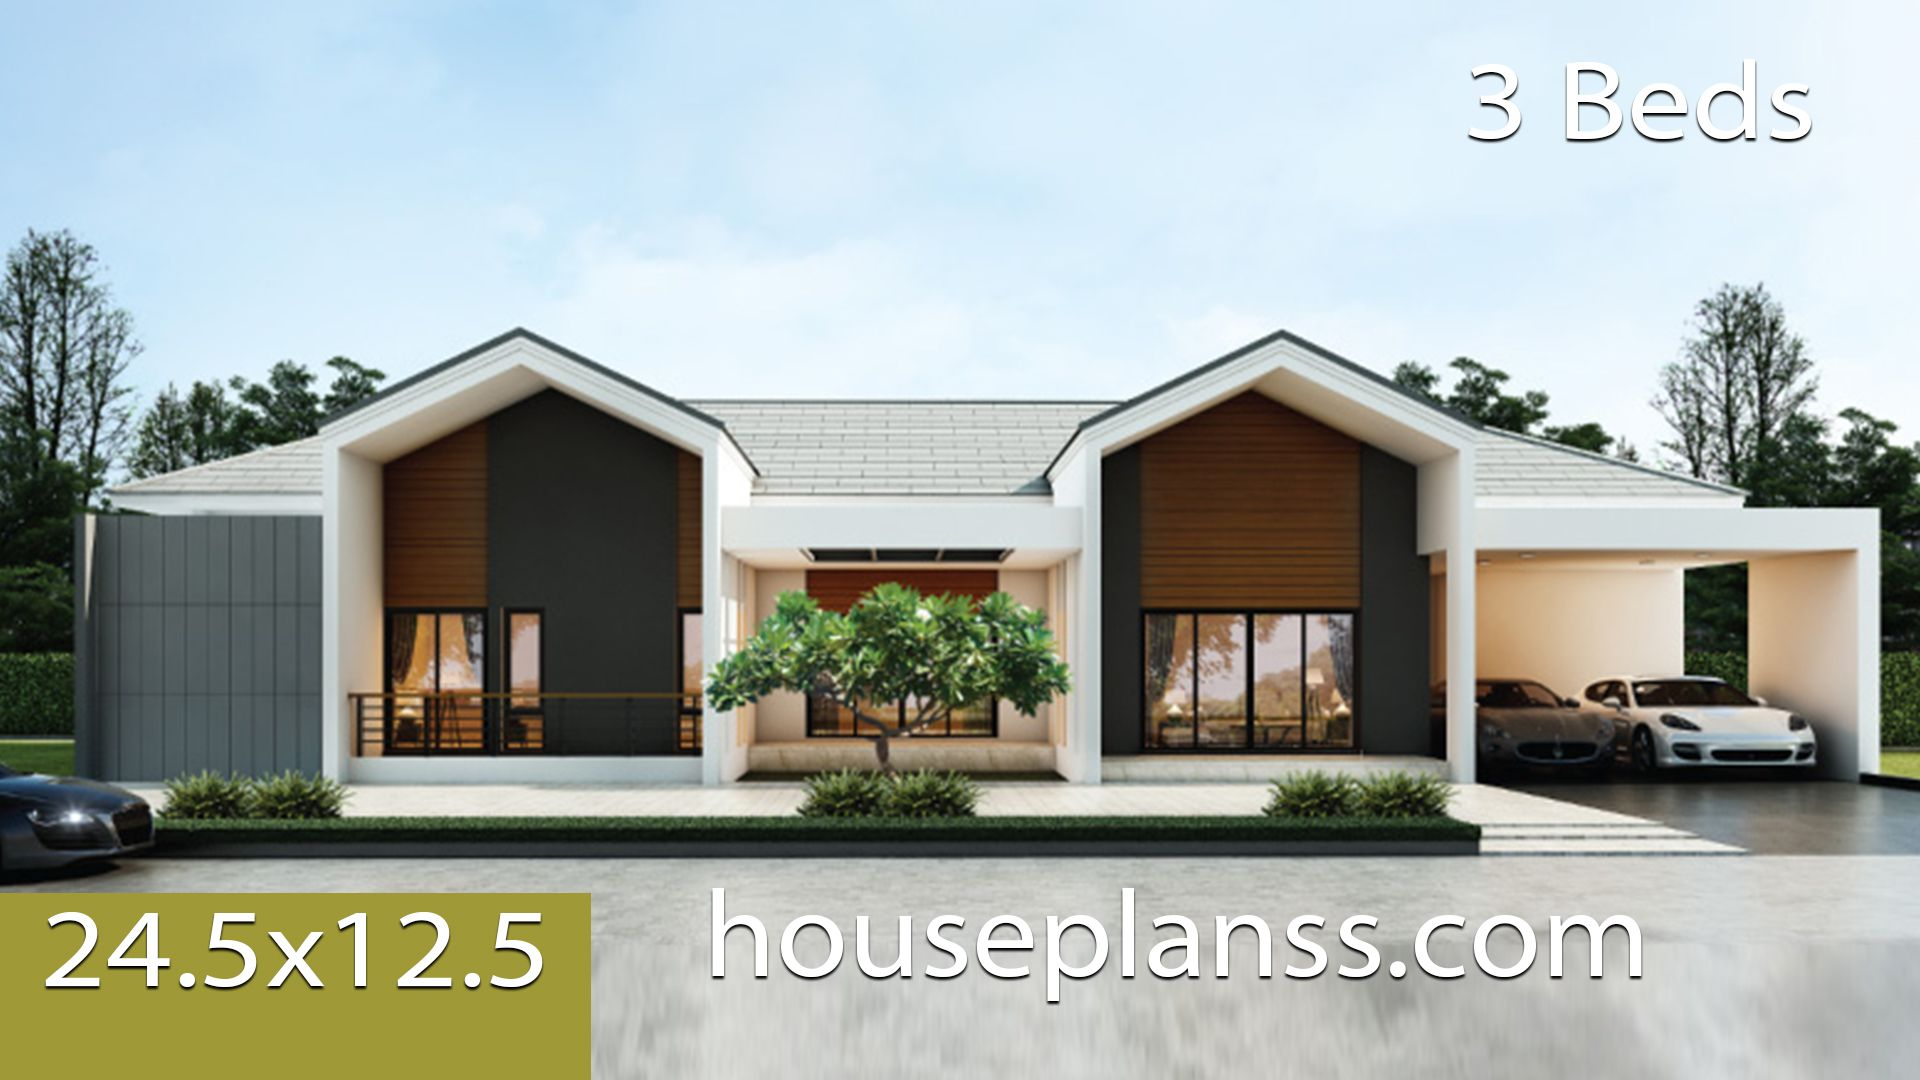 House Design Idea 24 5x12 5 With 3 Bedrooms House Plans 3d In 2020 House Plans House Design House